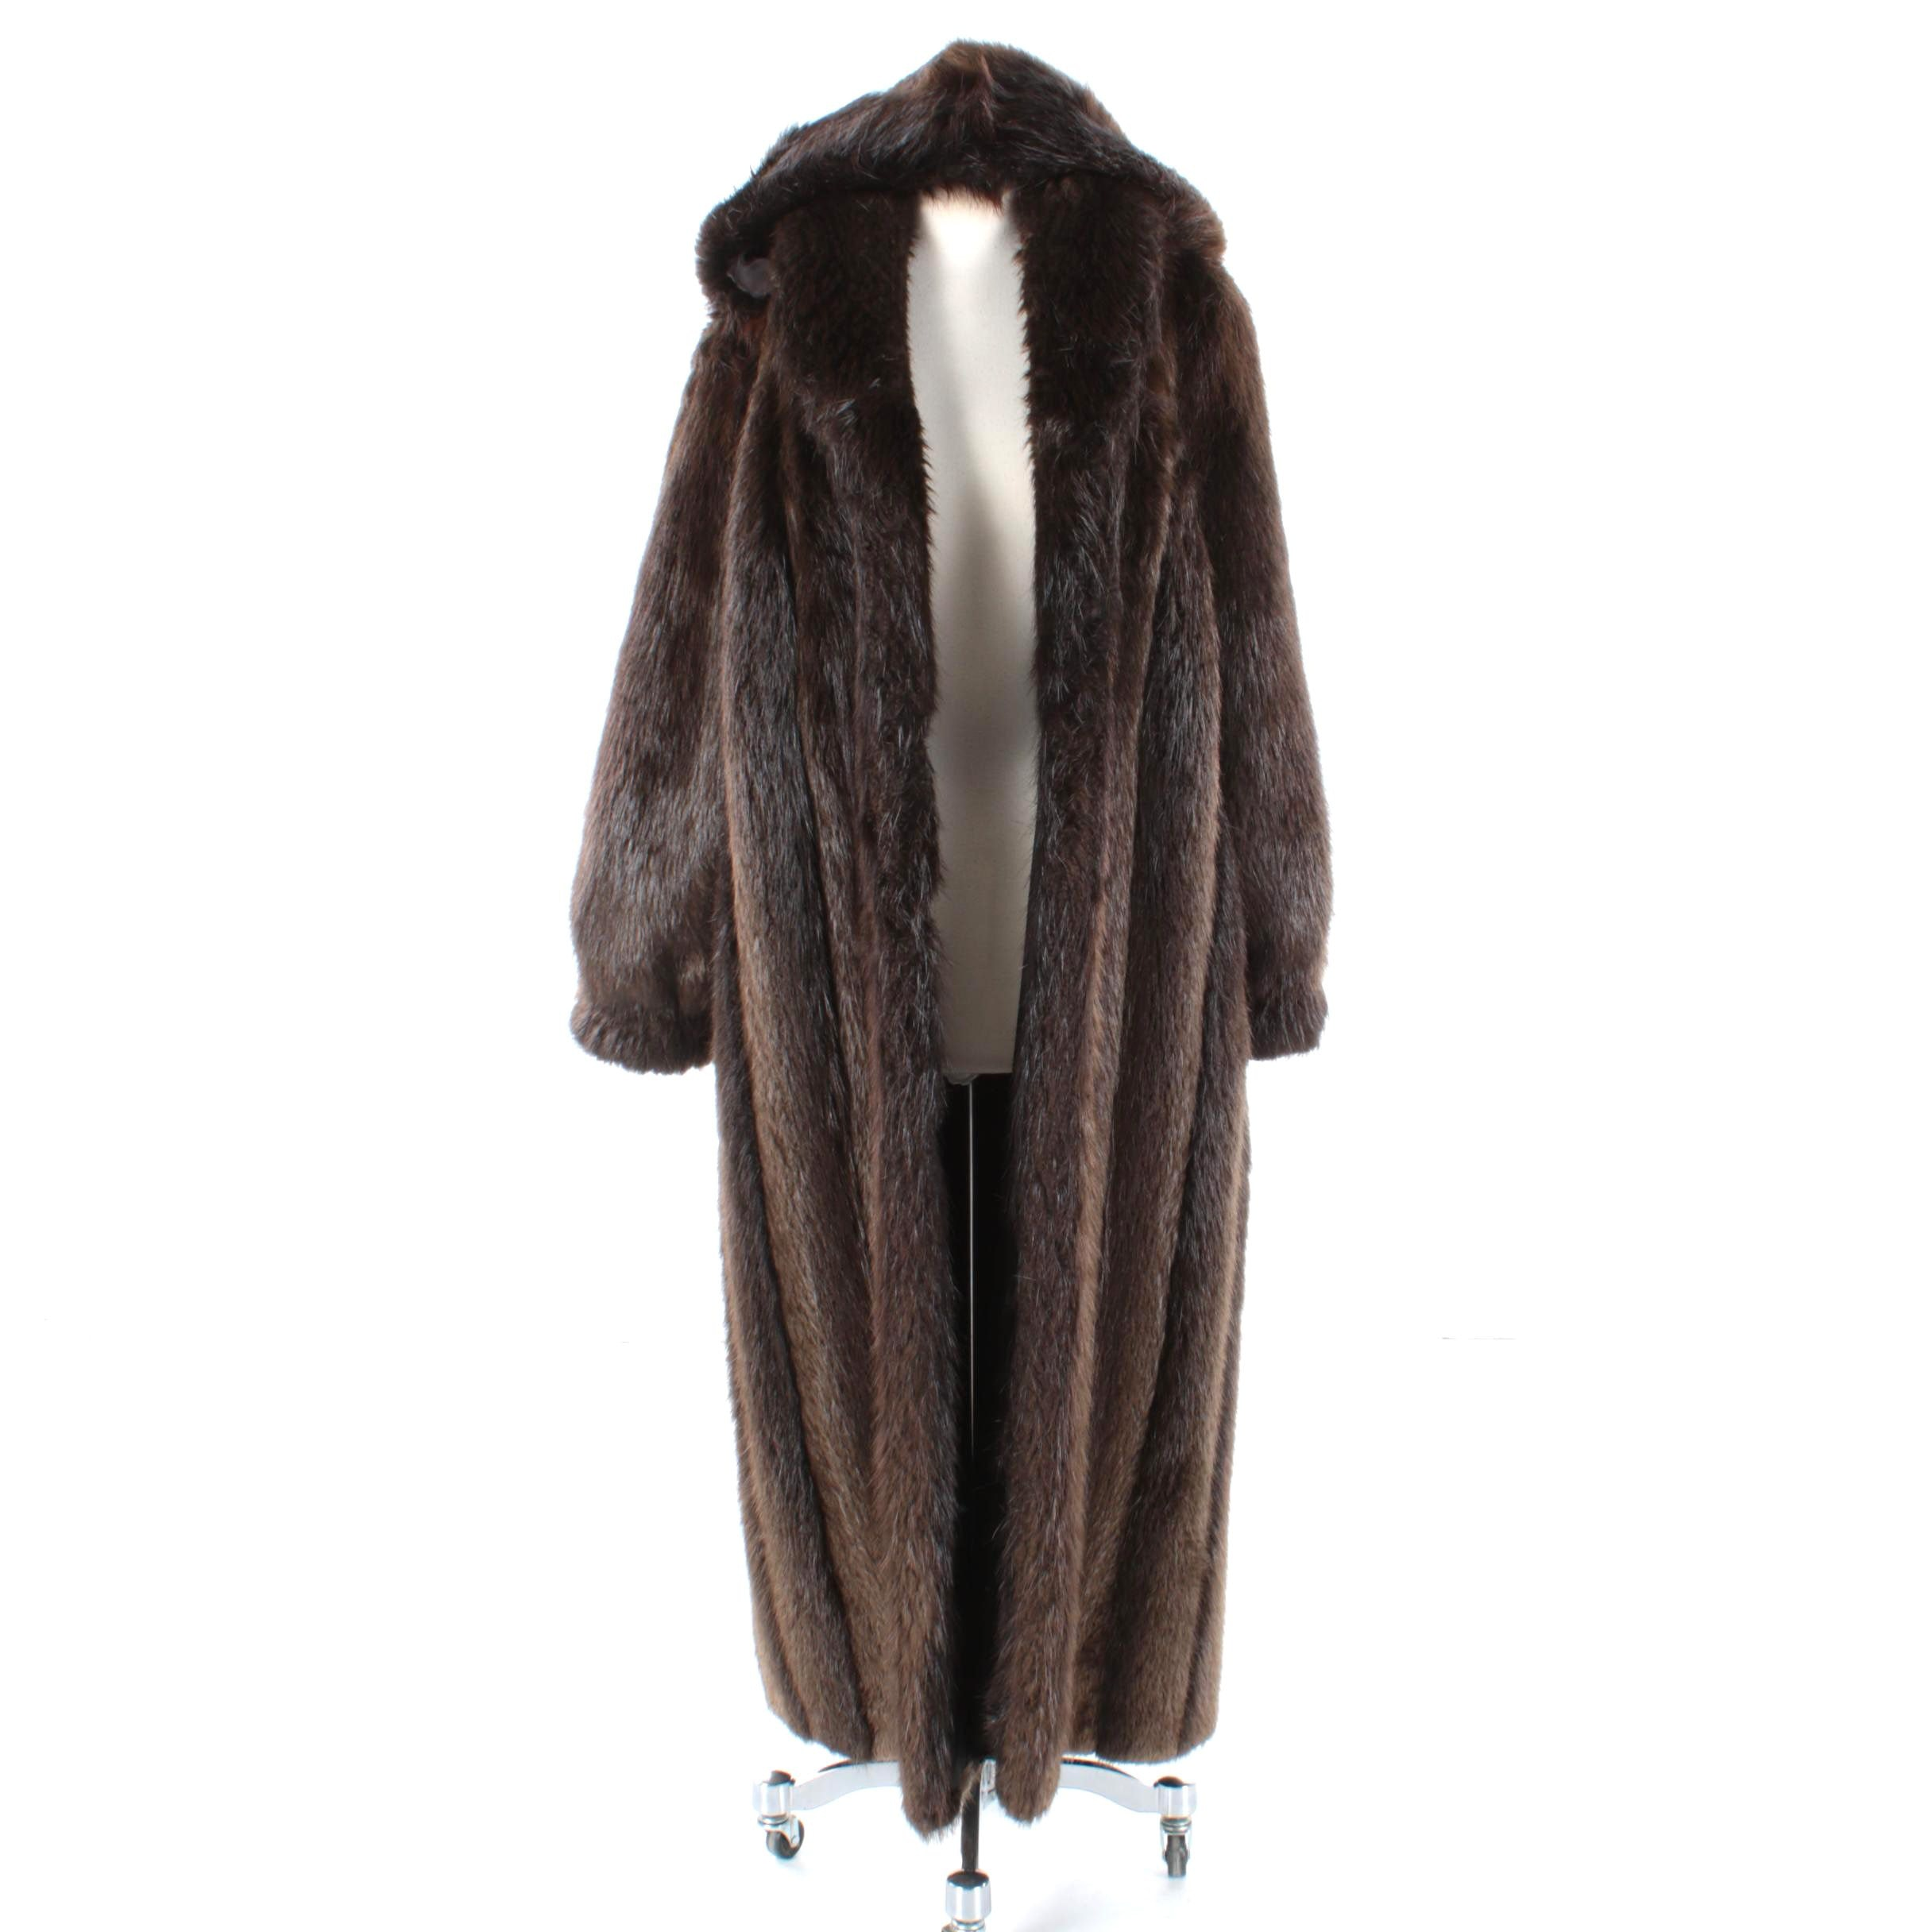 Women's HF Hinsdale Furriers Beaver Fur Coat with Removable Hood